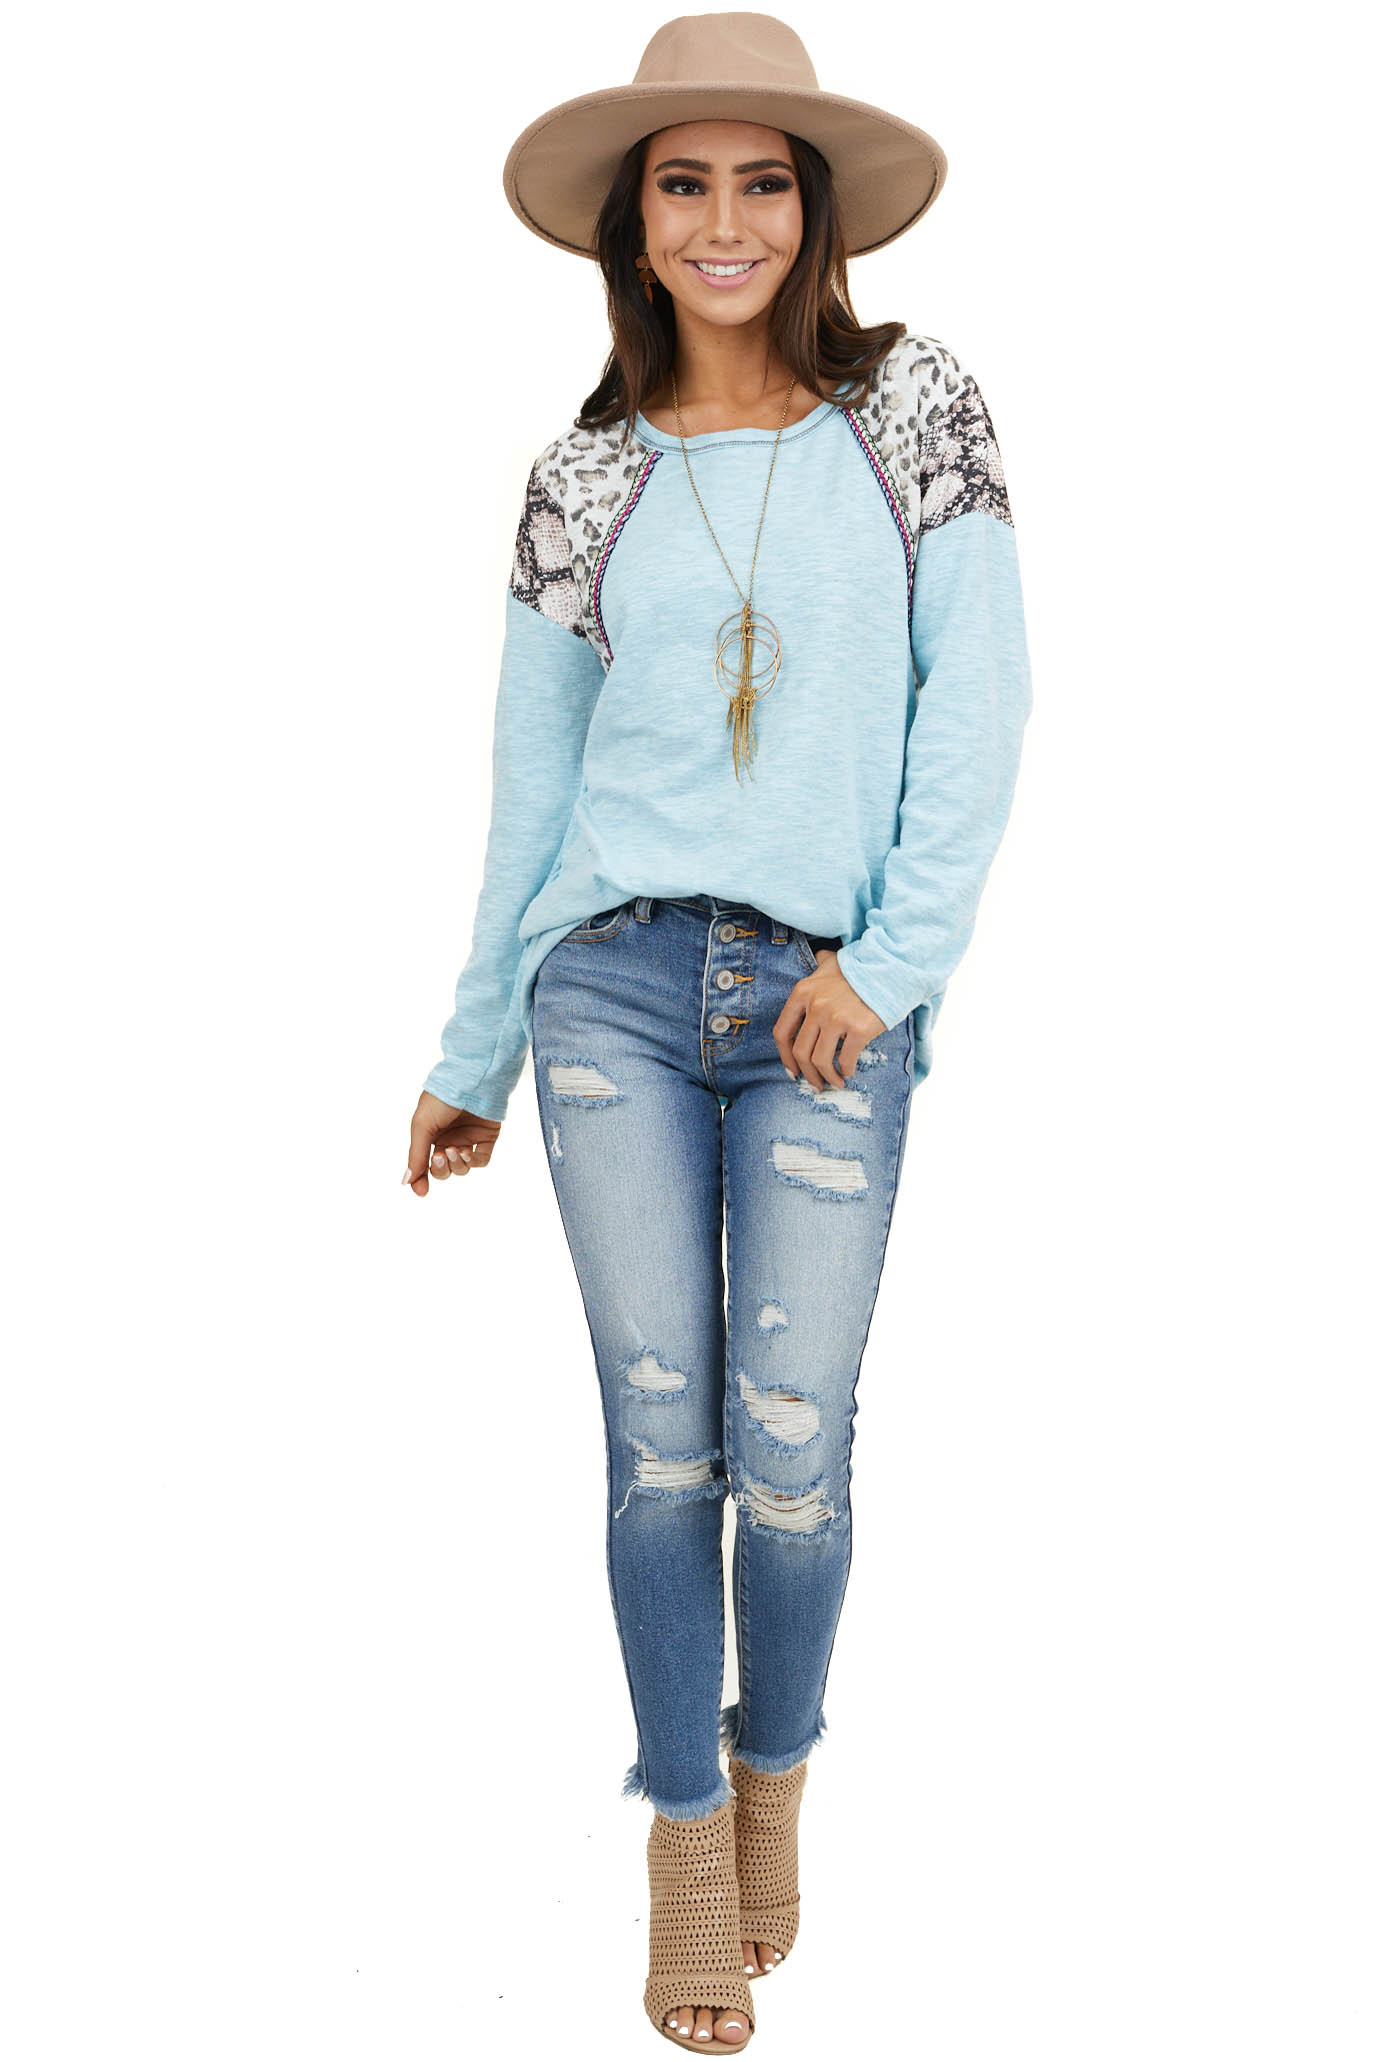 Sky Blue Long Sleeve Top with Leopard and Snakeskin Print